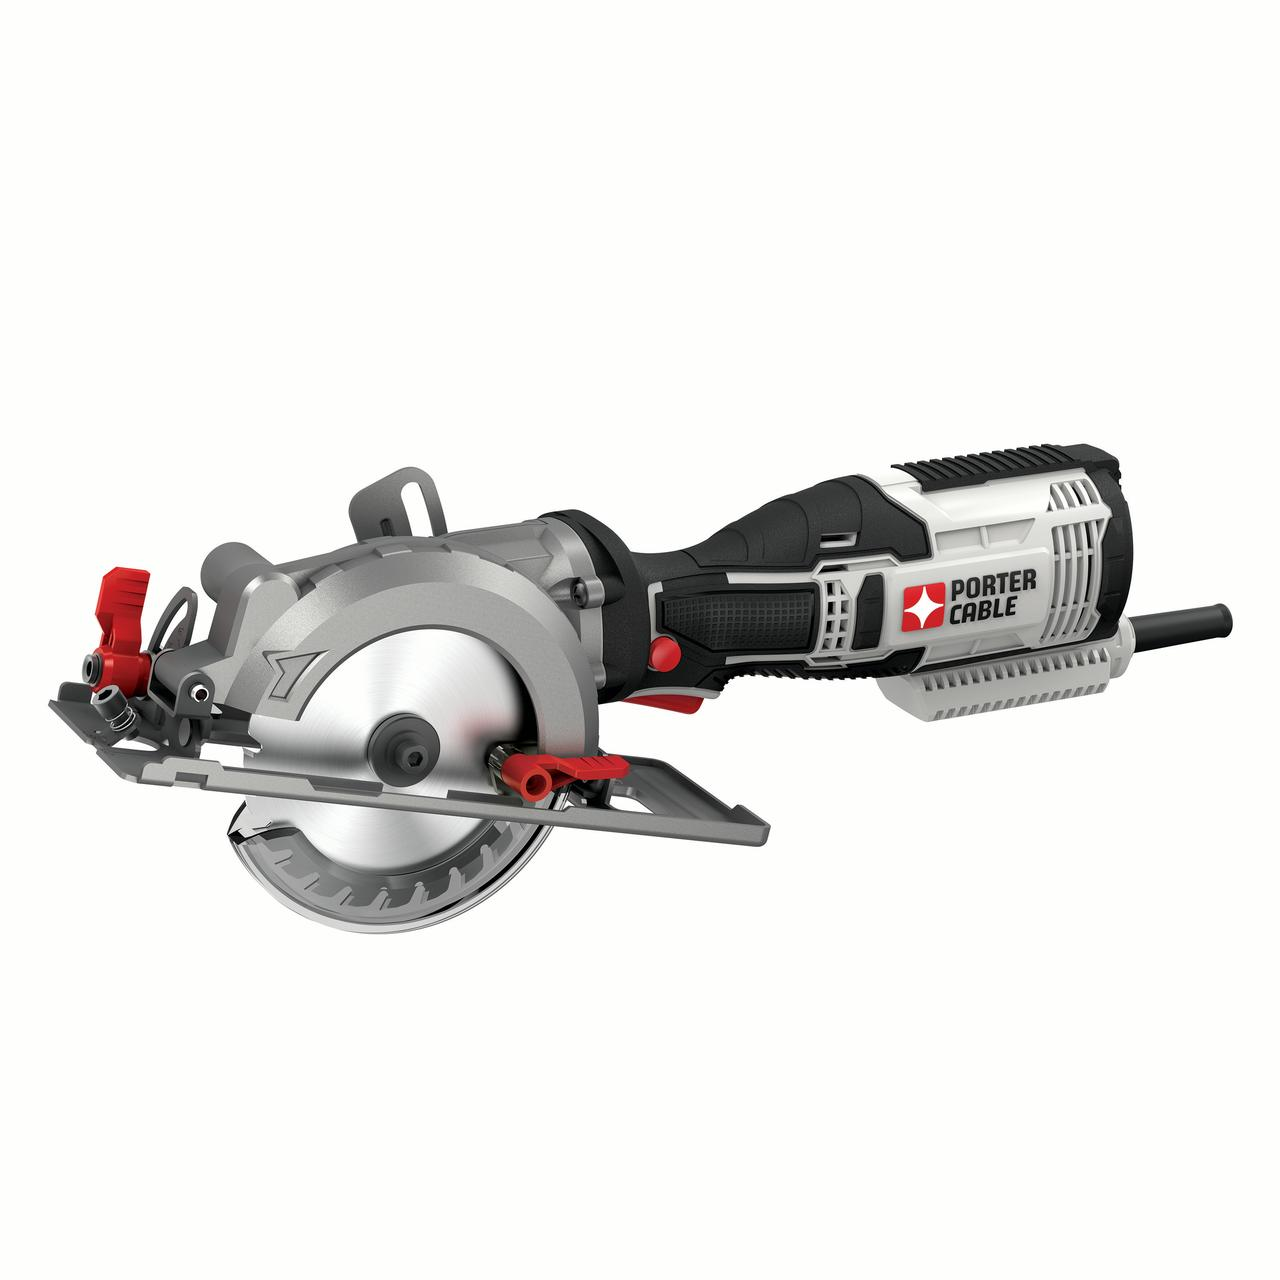 PORTER CABLE PCE381K 5.5-Amp 4-1/2-Inch Compact Circular Saw Kit